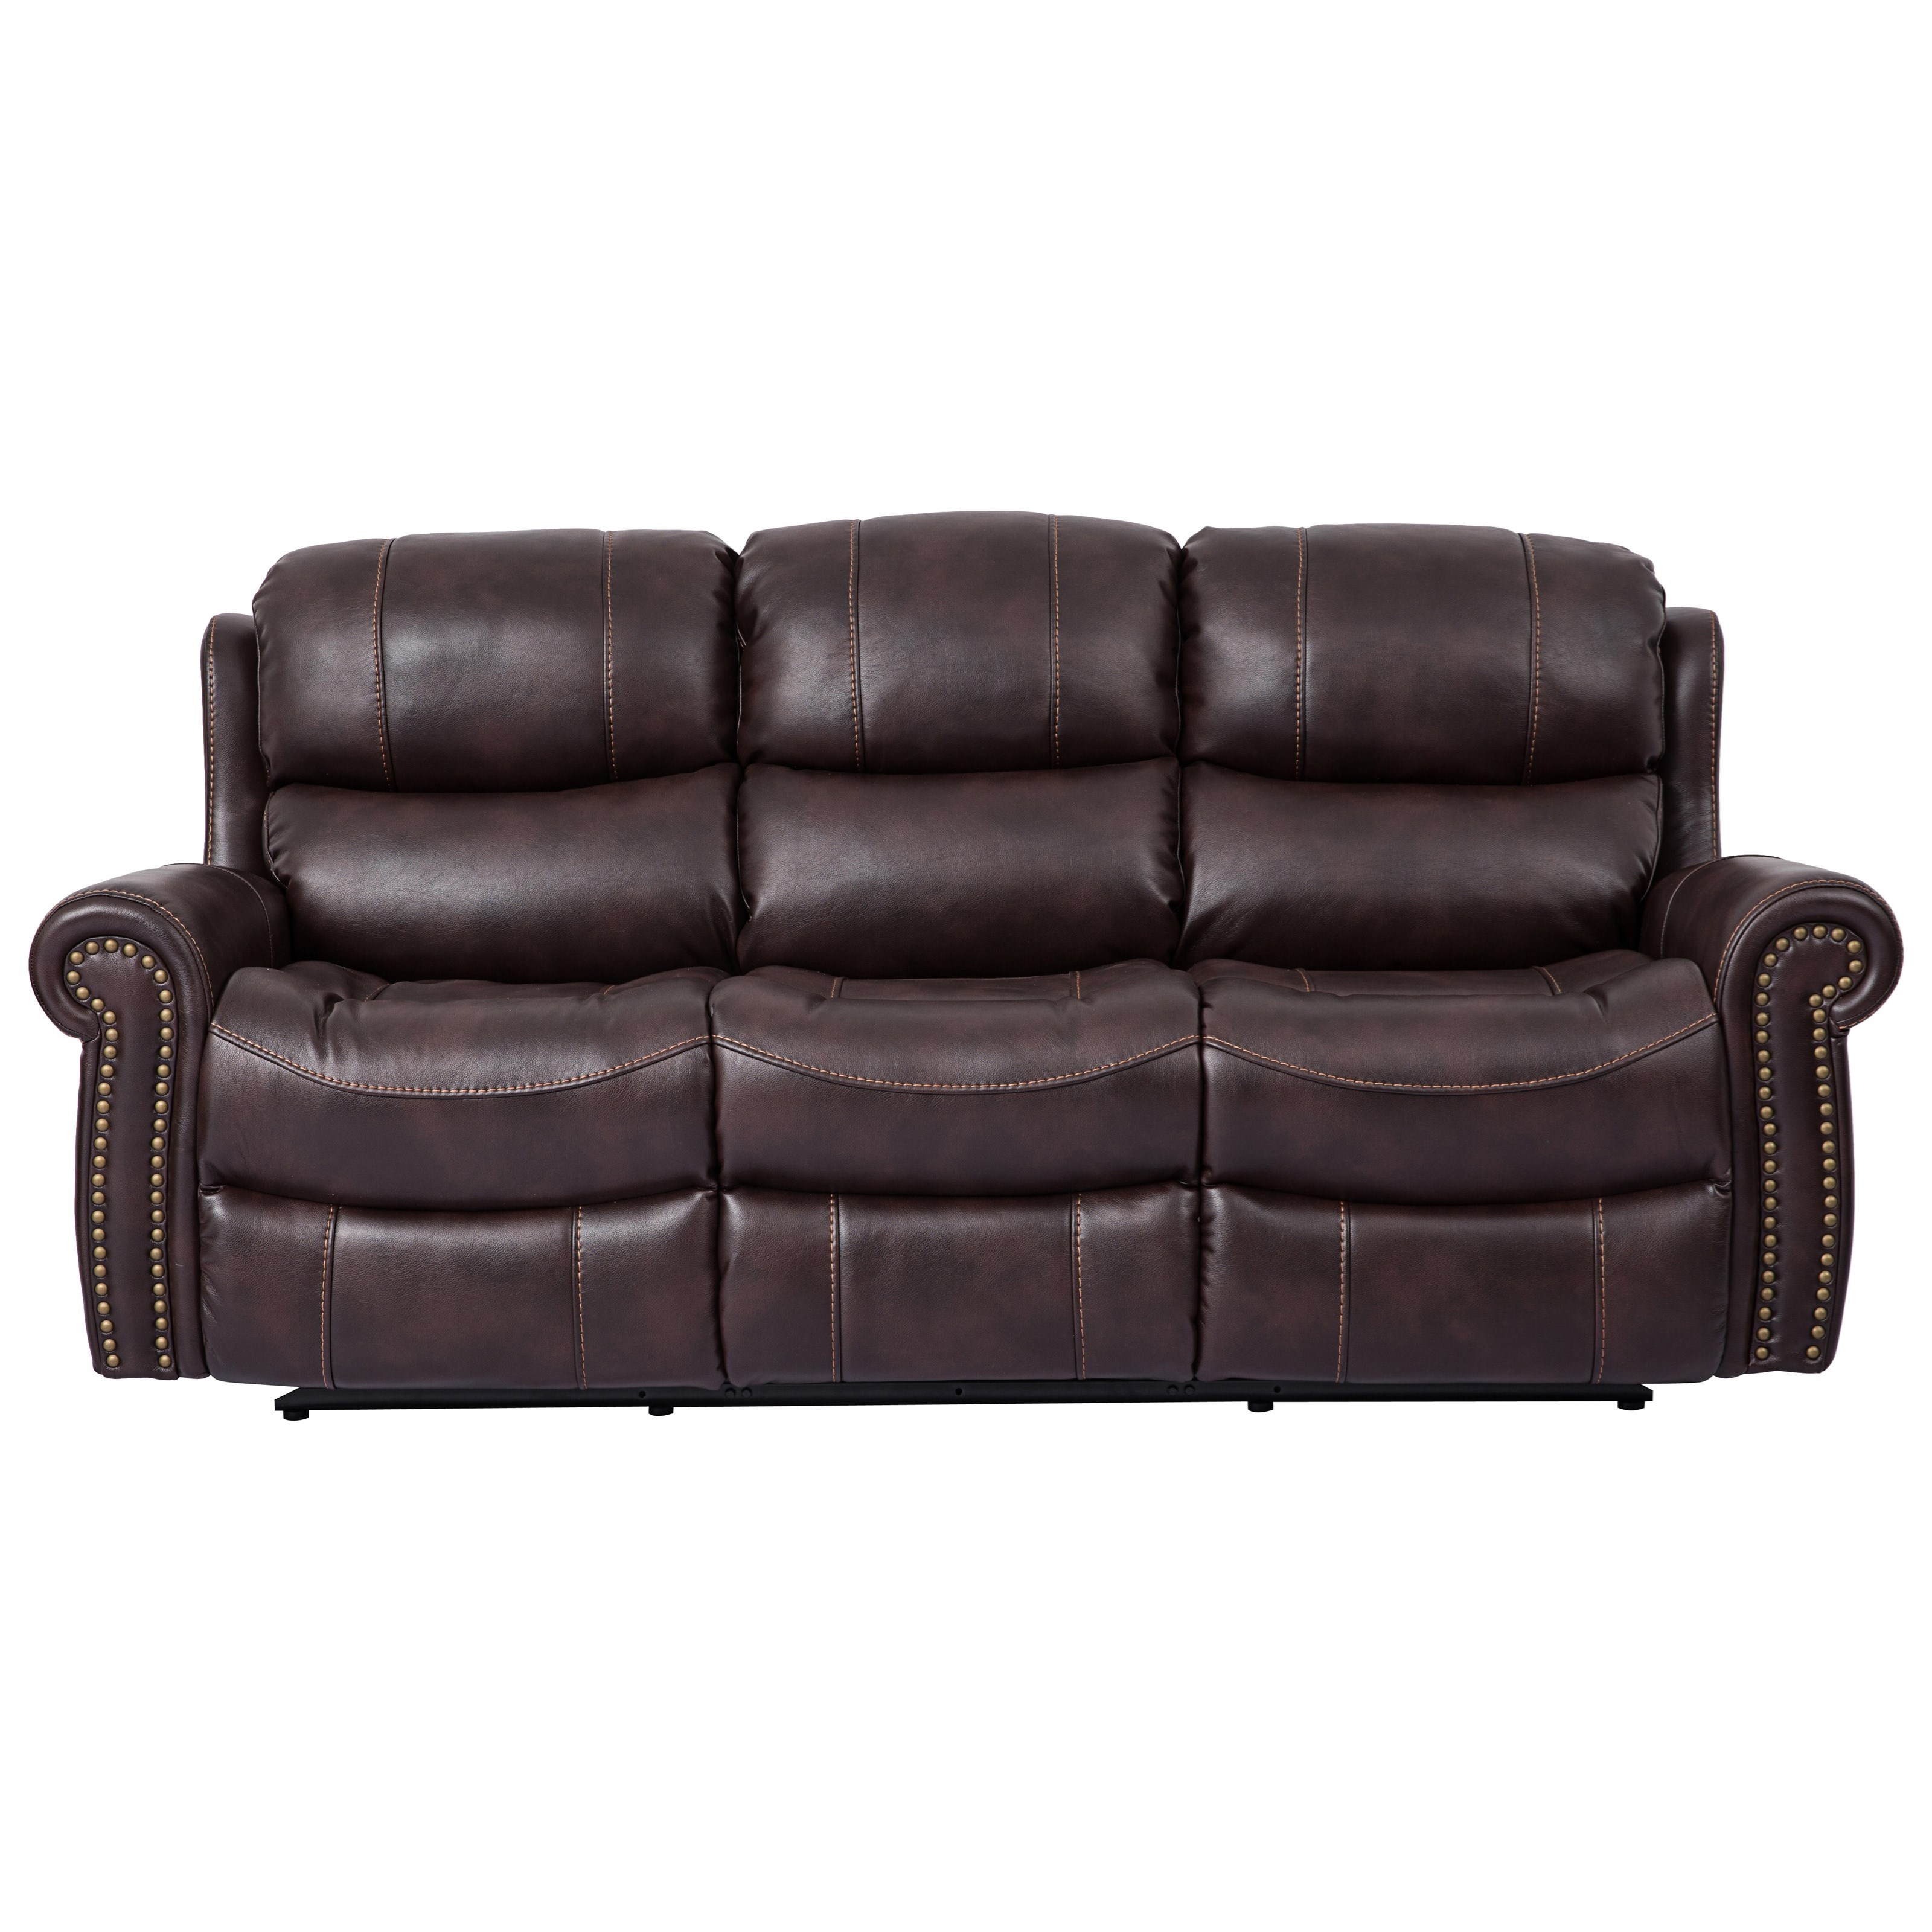 Piedmont Leather Dual Reclining Sofa with Rolled Arms by Cheers at Royal  Furniture